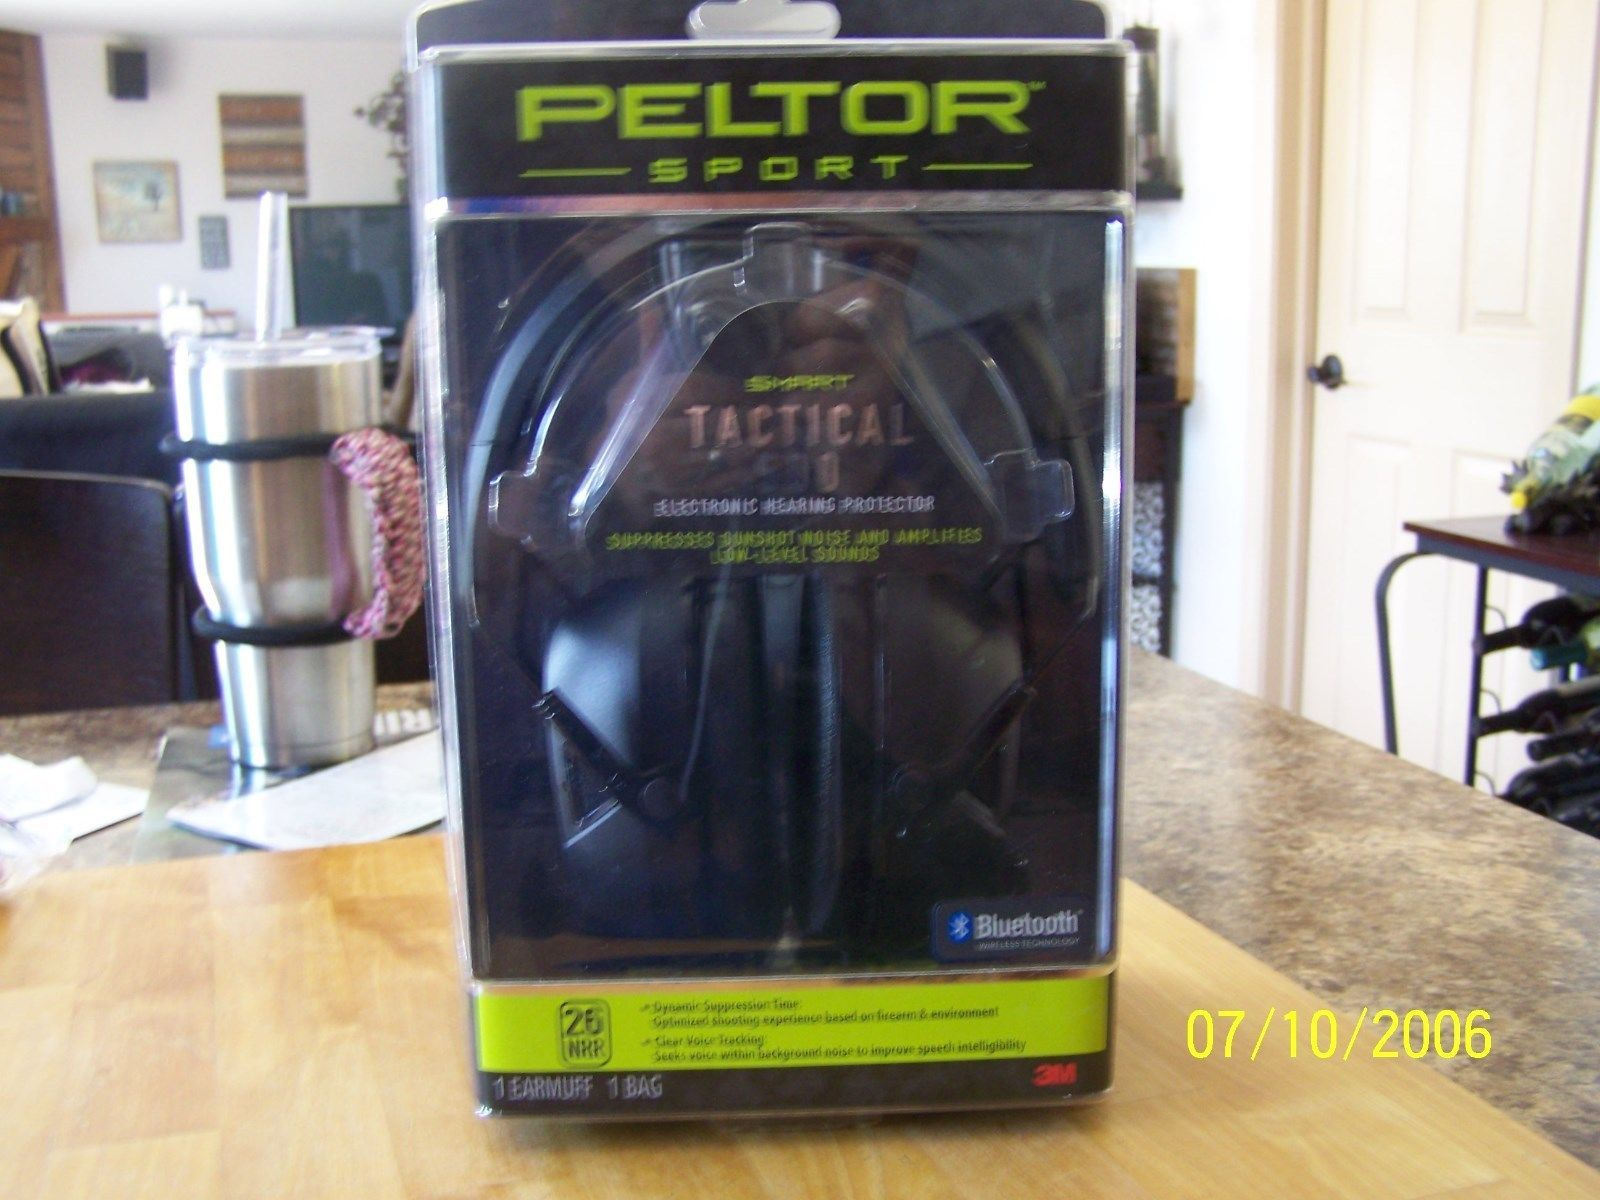 Peltor Sport Tactical 500 Electronic Hearing Protection